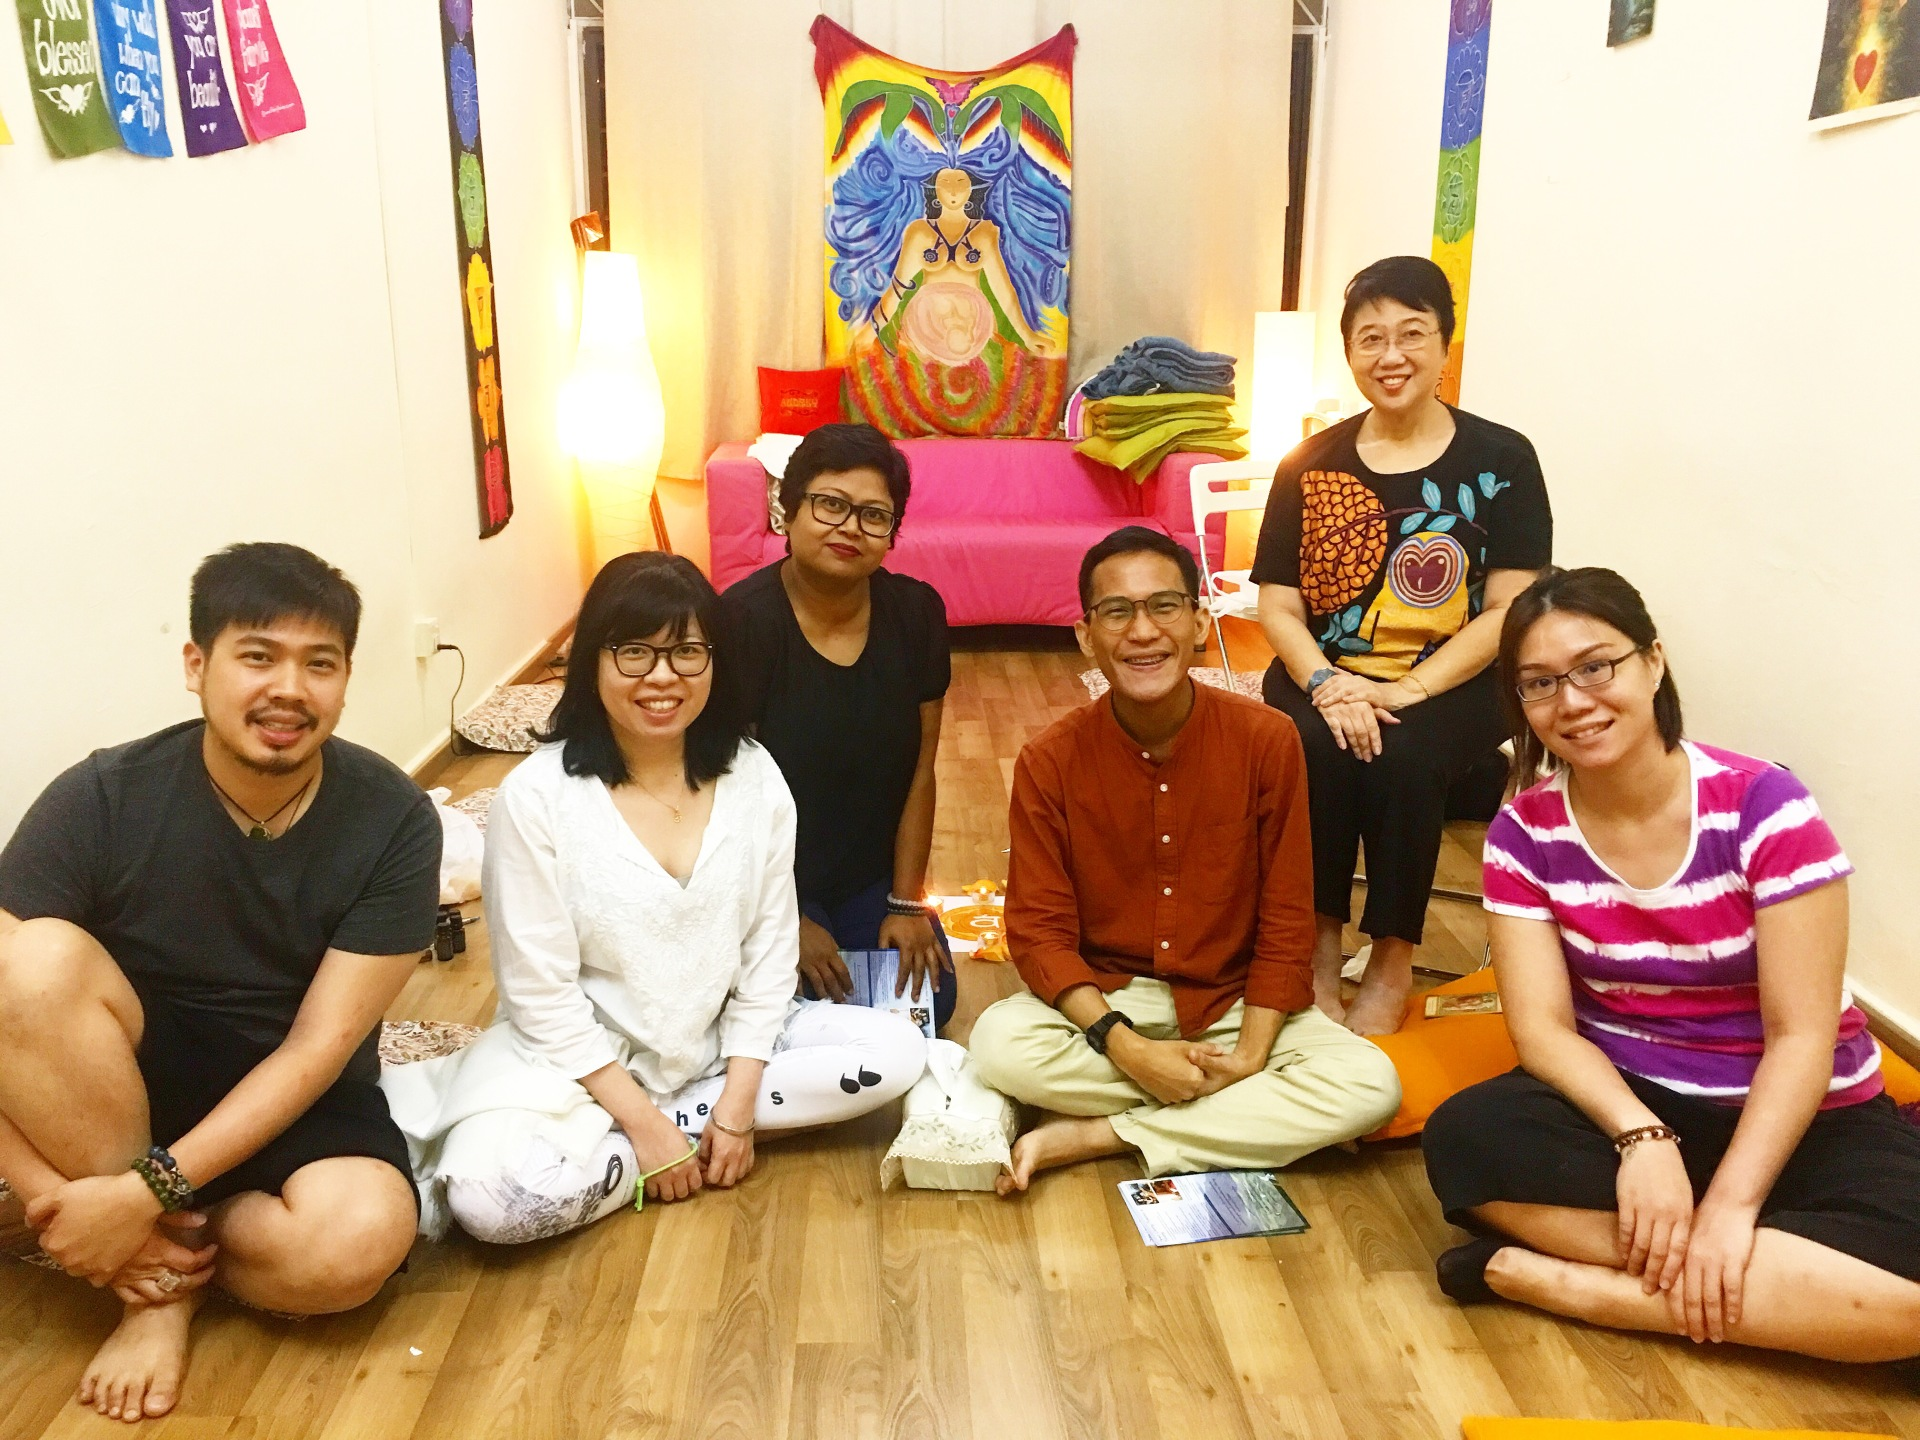 Ceremony of the 6-Petalled Lotus Apr 2018